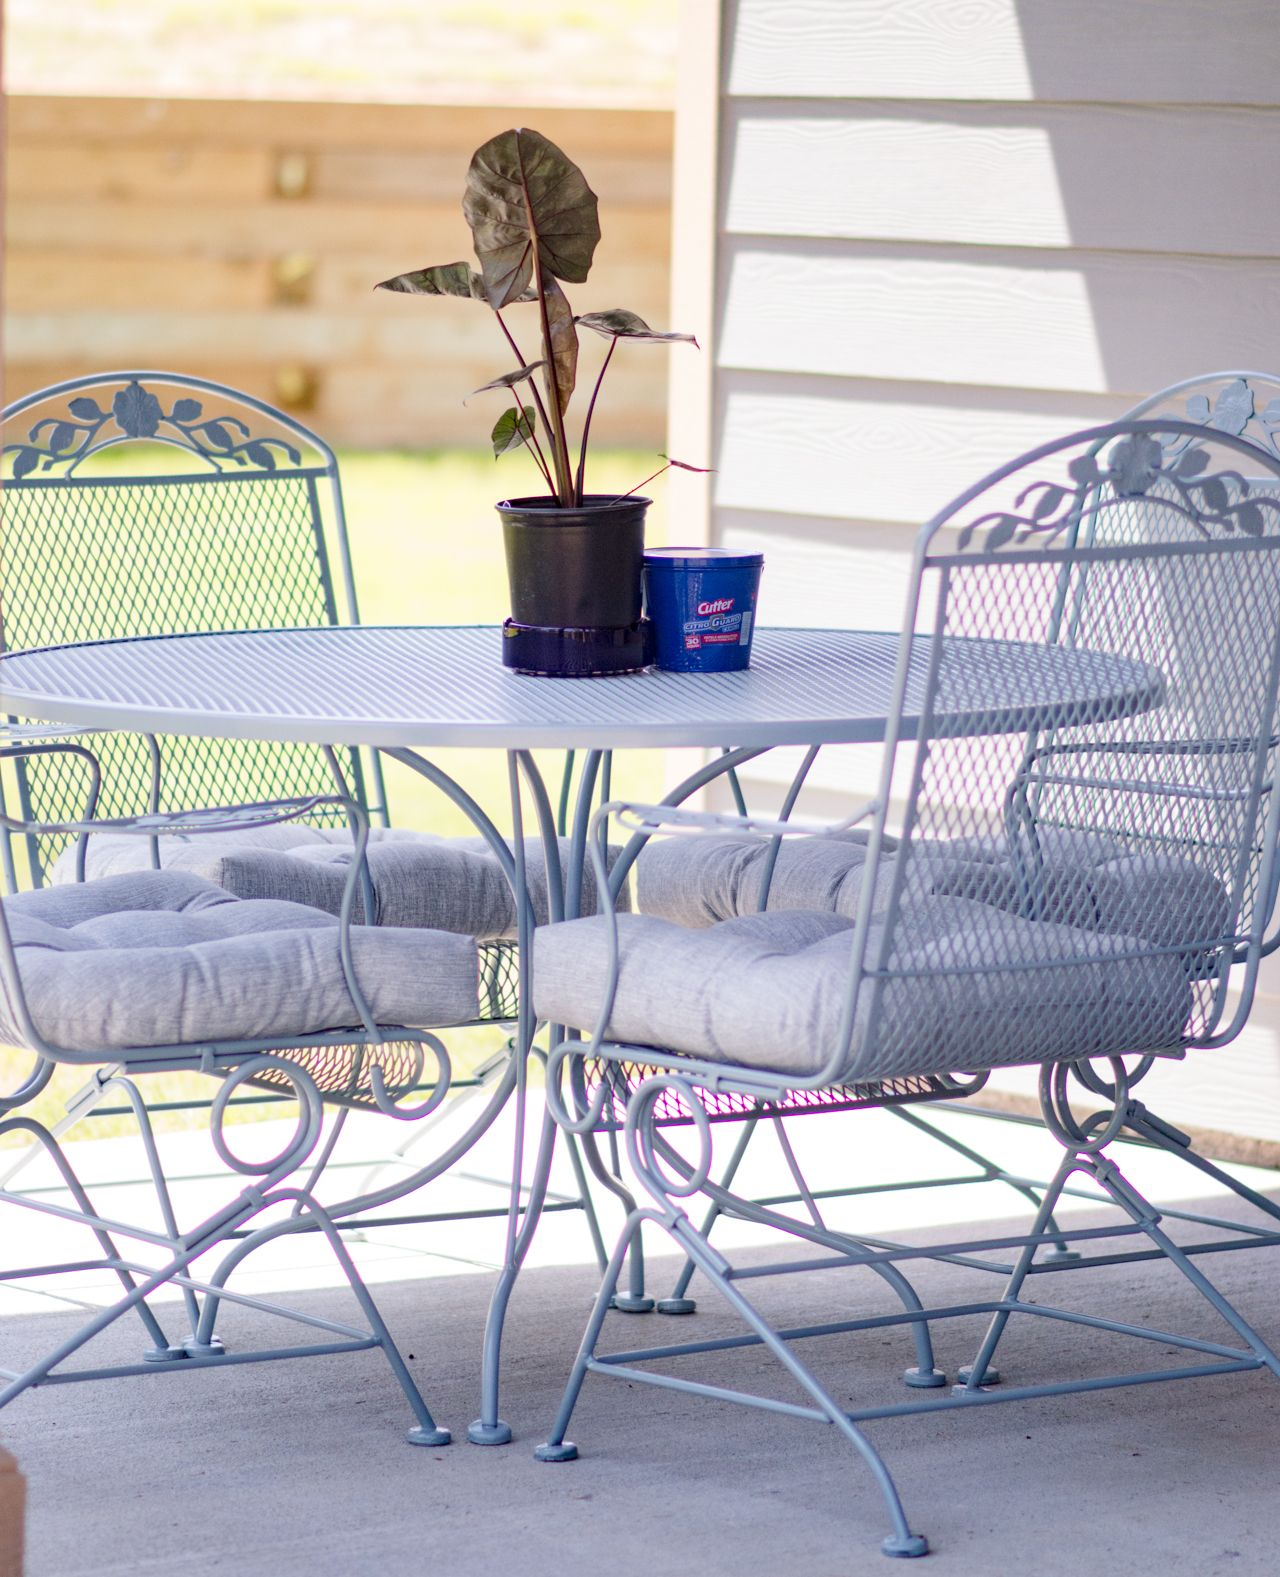 Diy Patio Furniture Makeover  Check Out Our New Repurpused